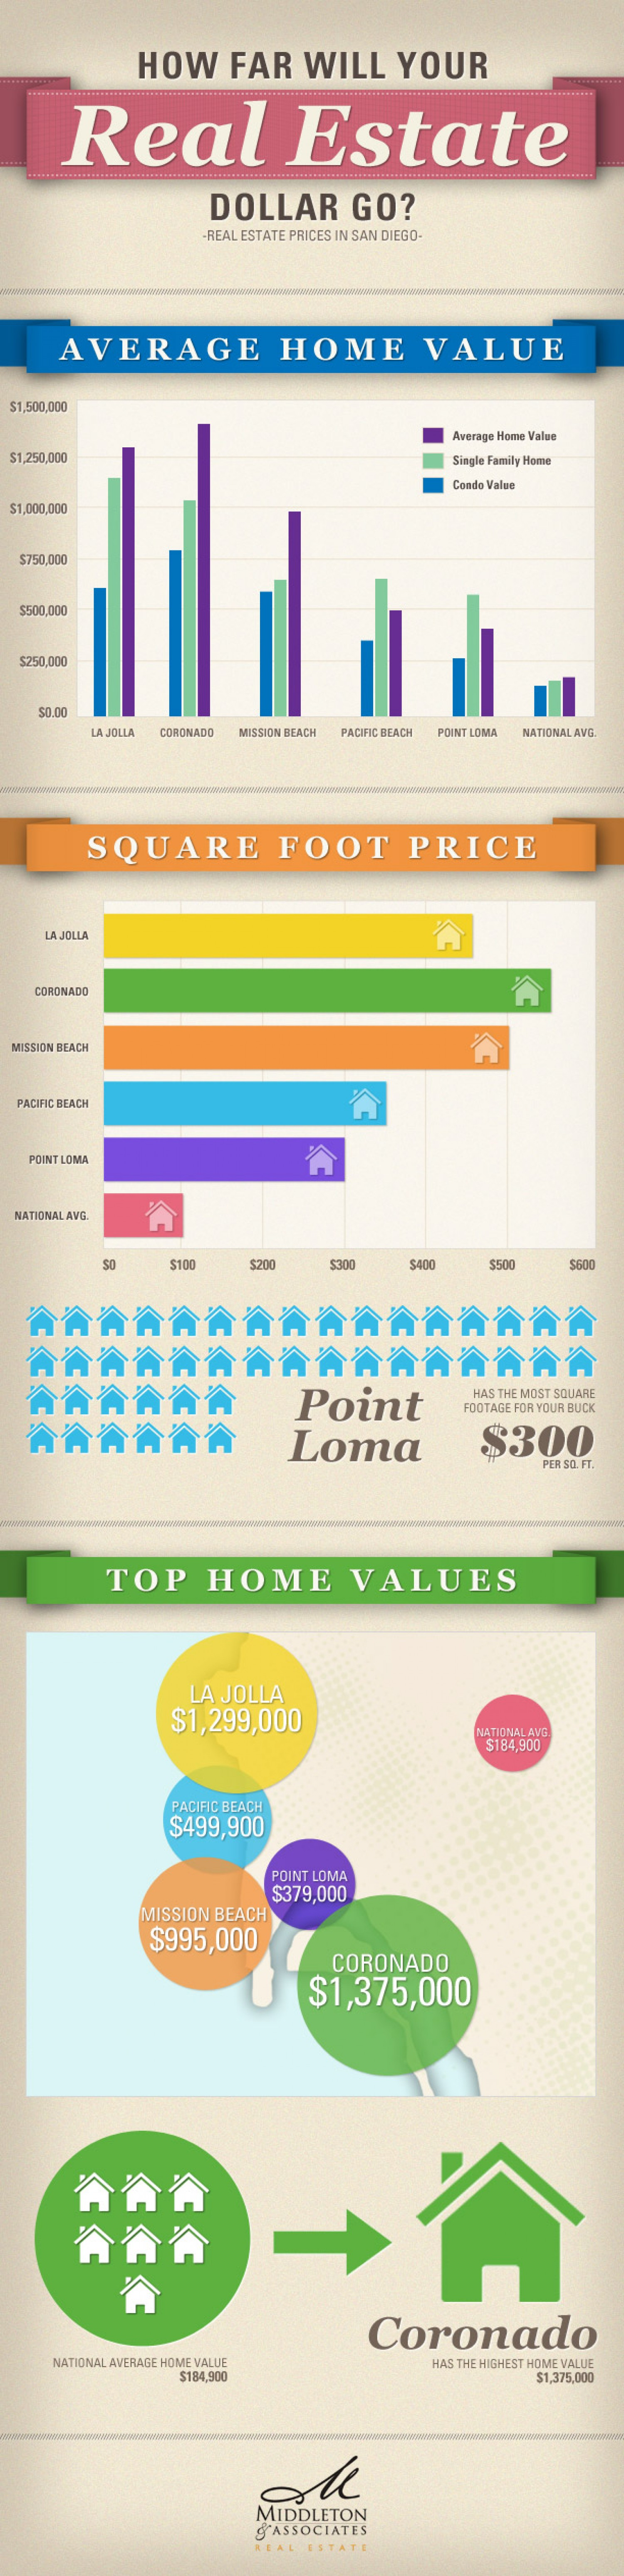 How far will your real estate dollars go?